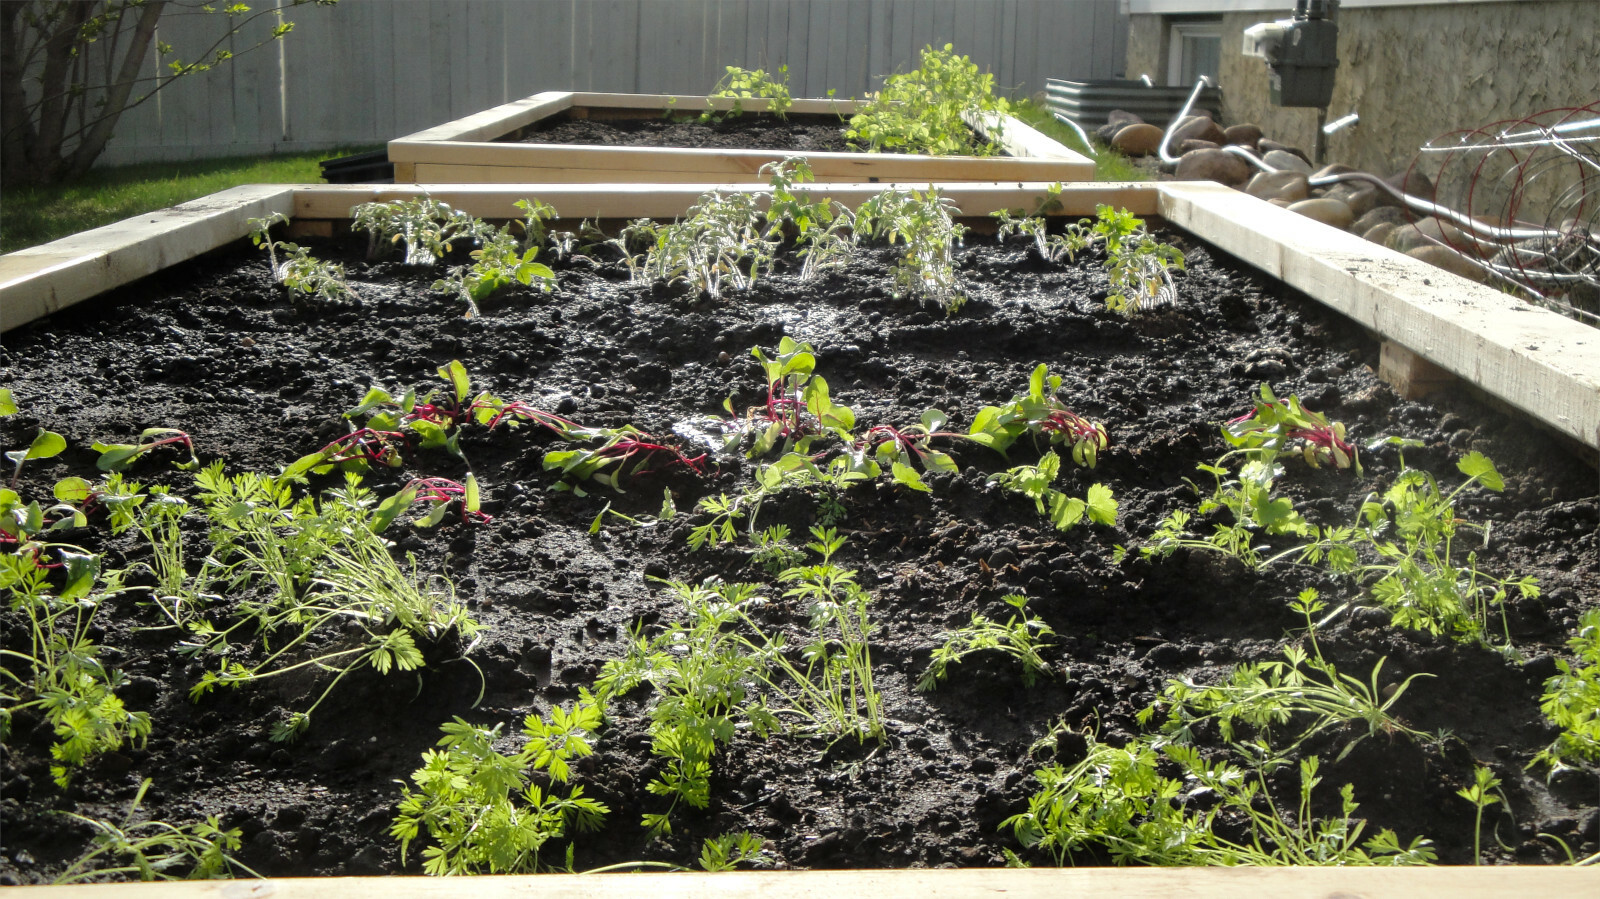 A picture of slightly sad looking beet, carrot, tomato, and pea plants spread out between 2 raised garden beds.